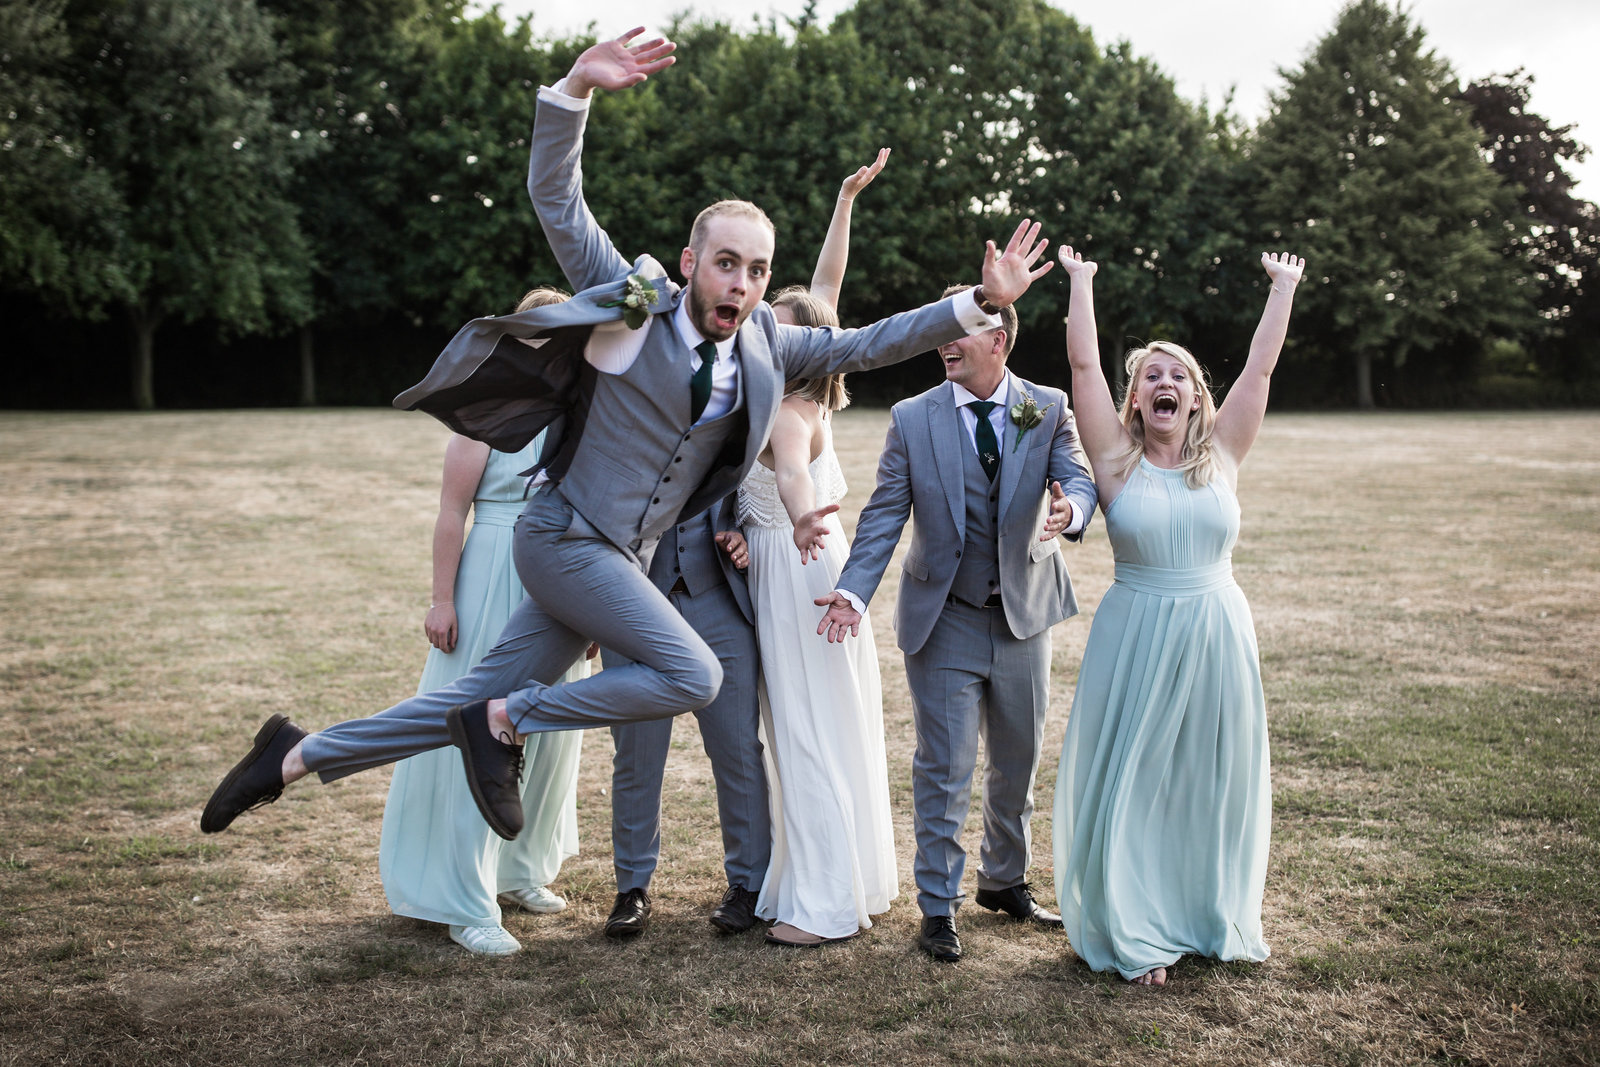 The wedding party stand on a field in Norfolk and one of the Groomsman throws himself in front of the photo.